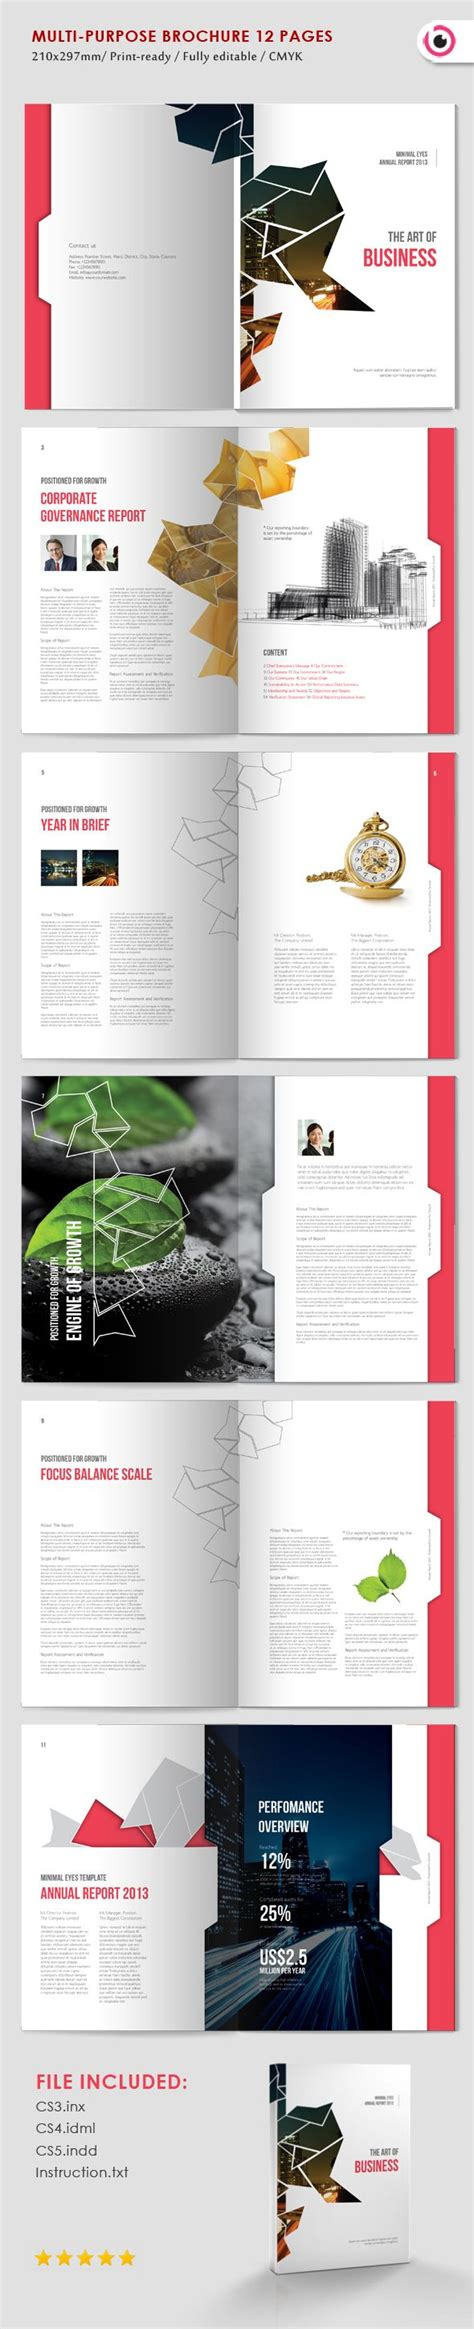 layout design brochure 193 best brochure design layout images on pinterest